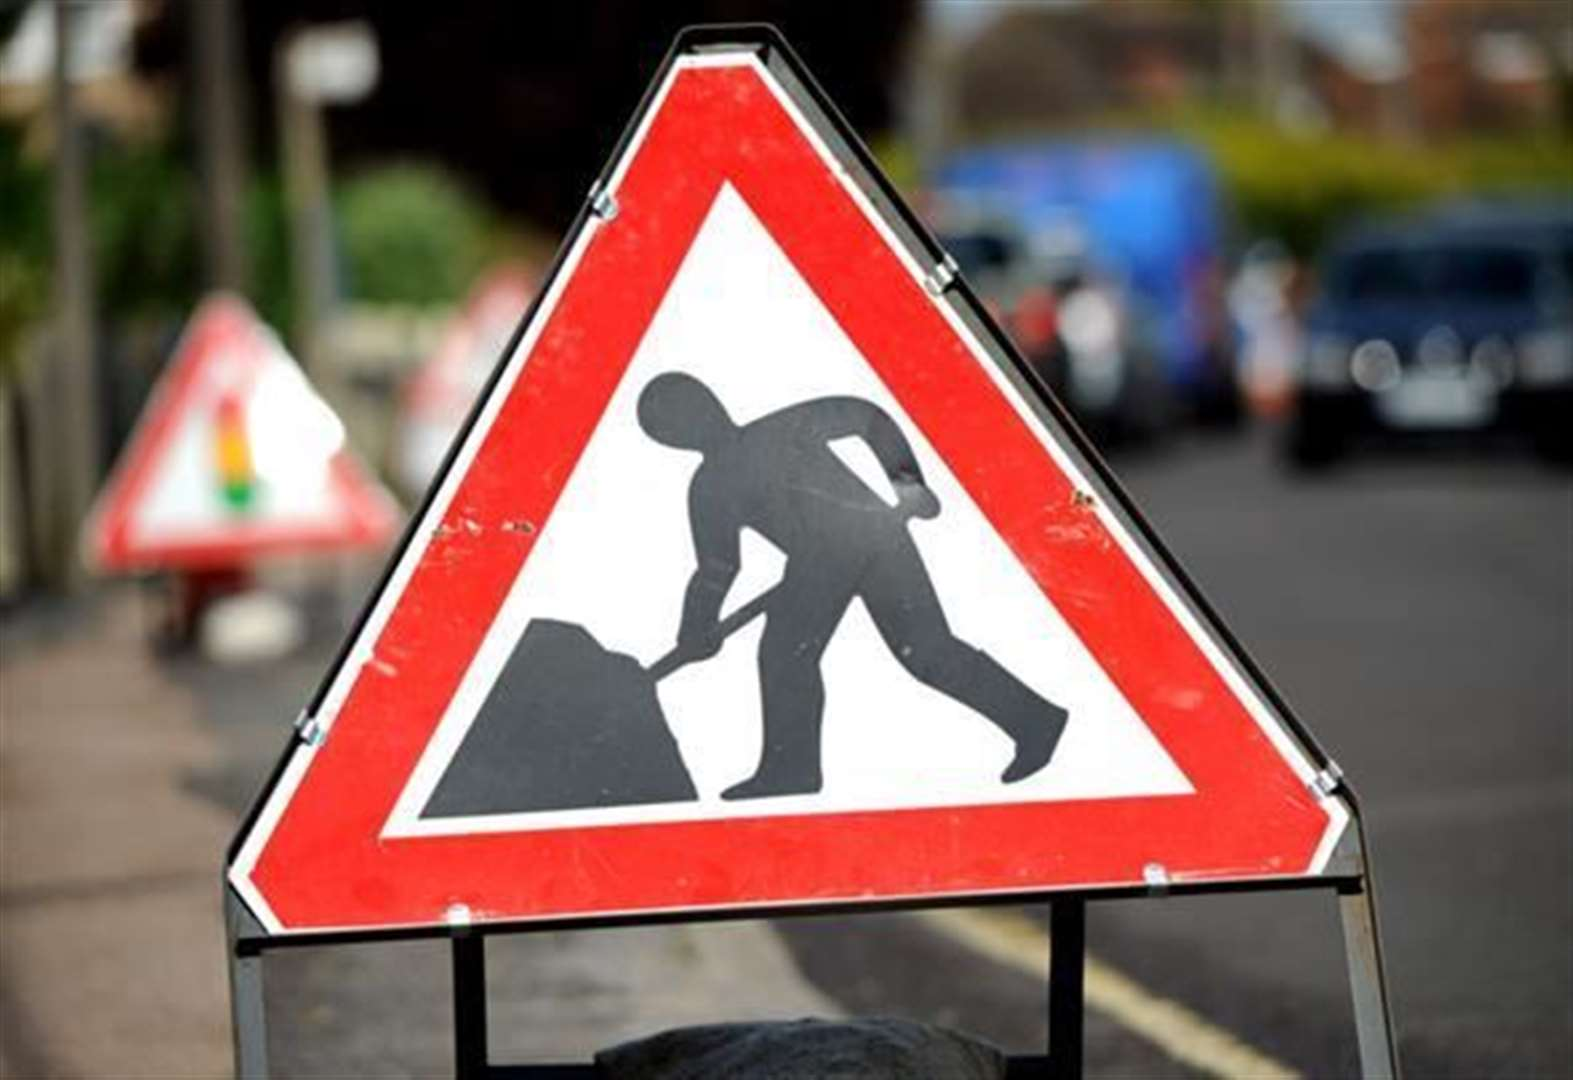 Roadworks 'chaos' brings months of misery to town